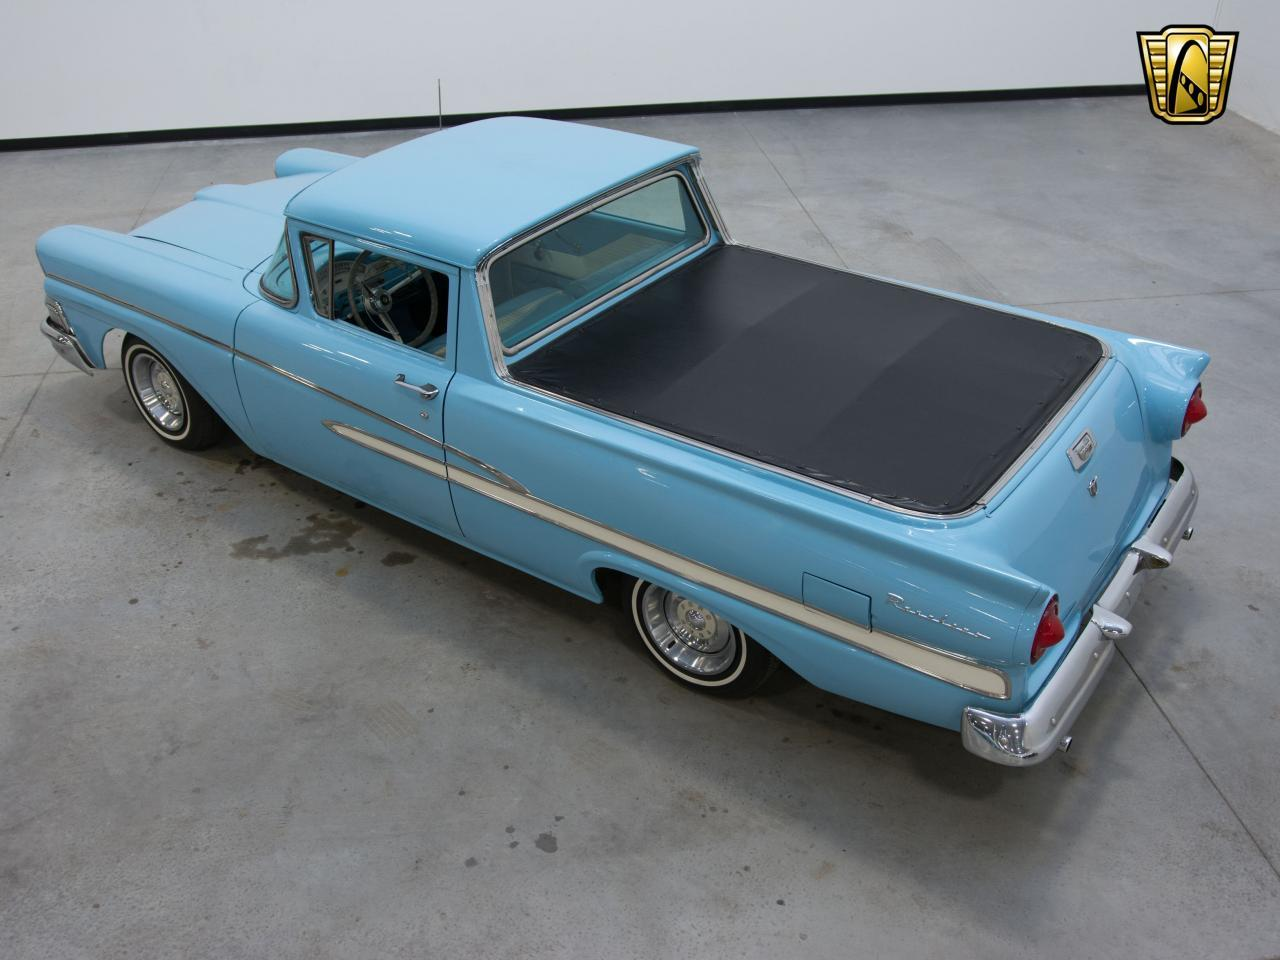 Large Picture of Classic '58 Ford Ranchero - $20,995.00 - KH0V